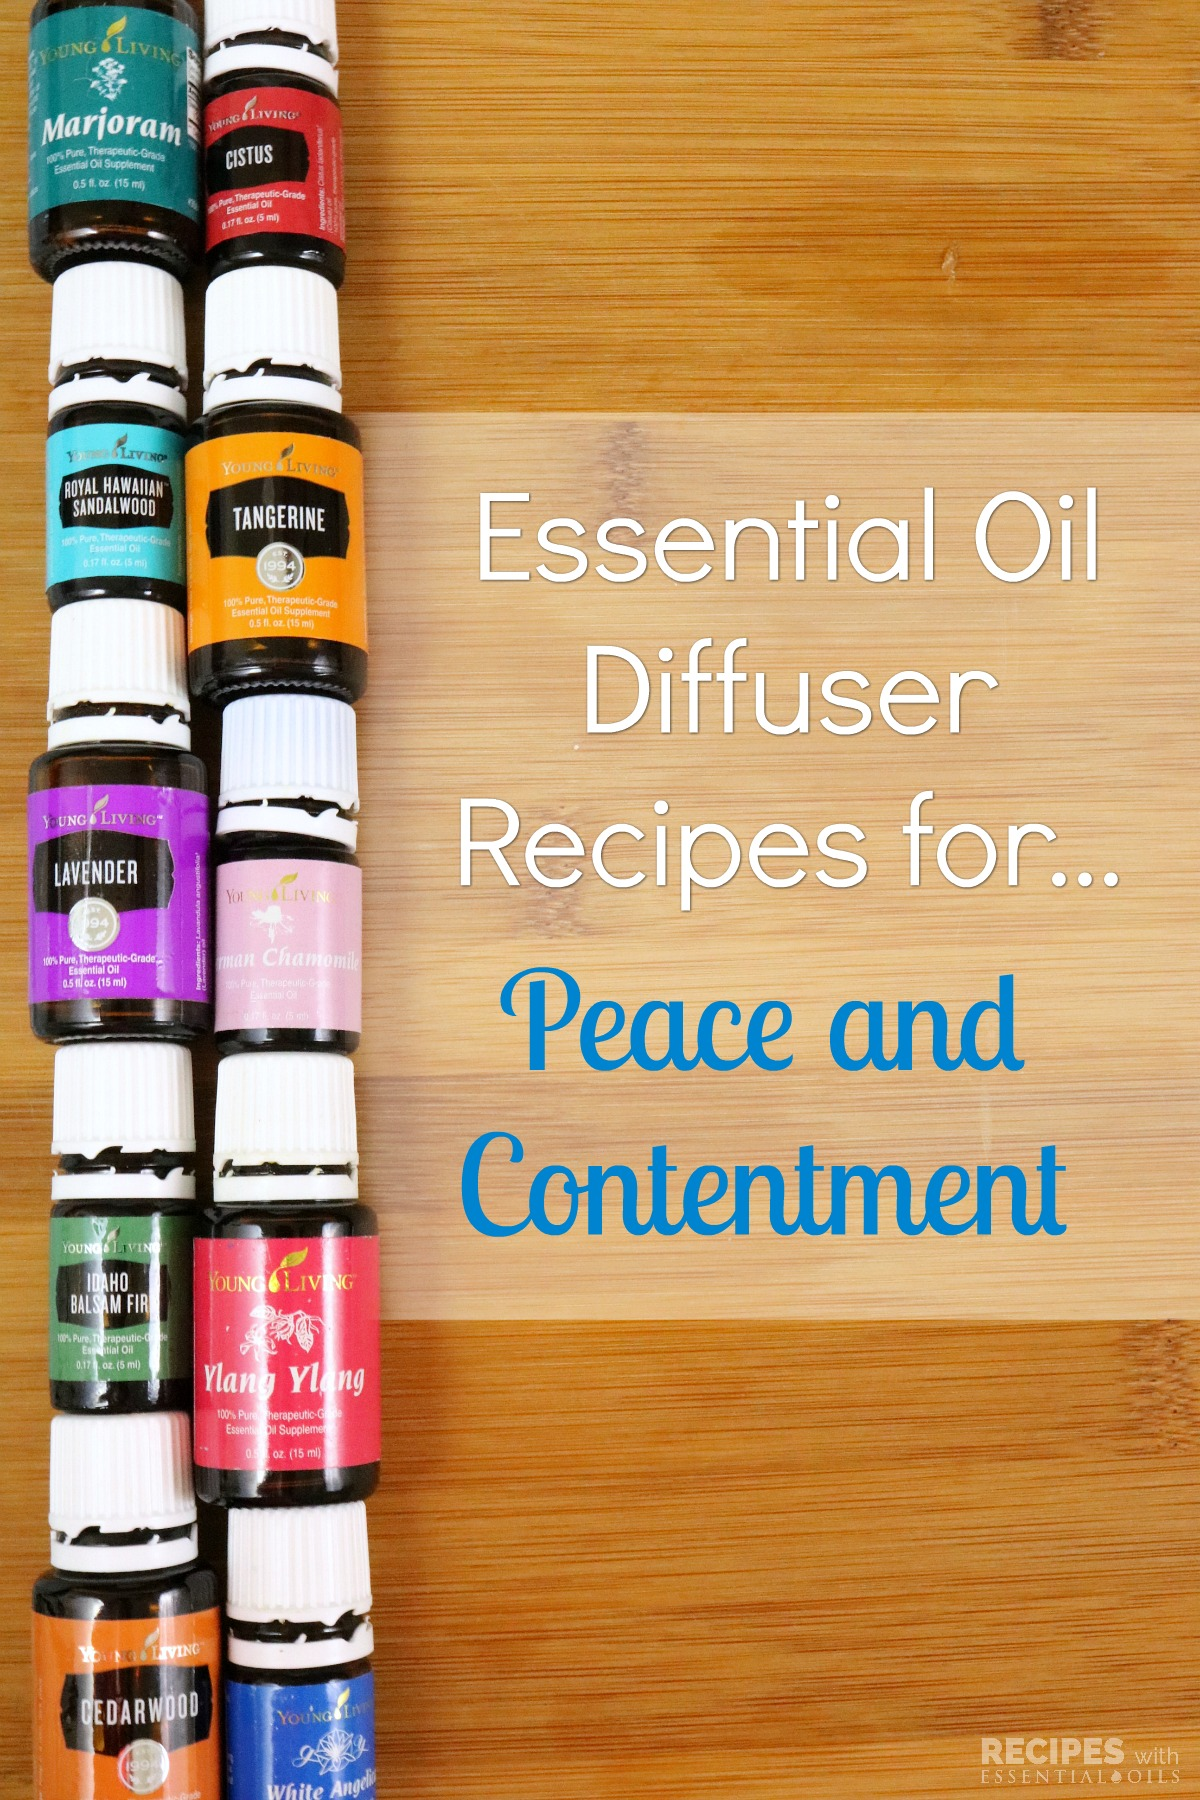 Essential Oil Diffuser Recipes for Peace and Contentment from RecipeswithEssentialOils.com